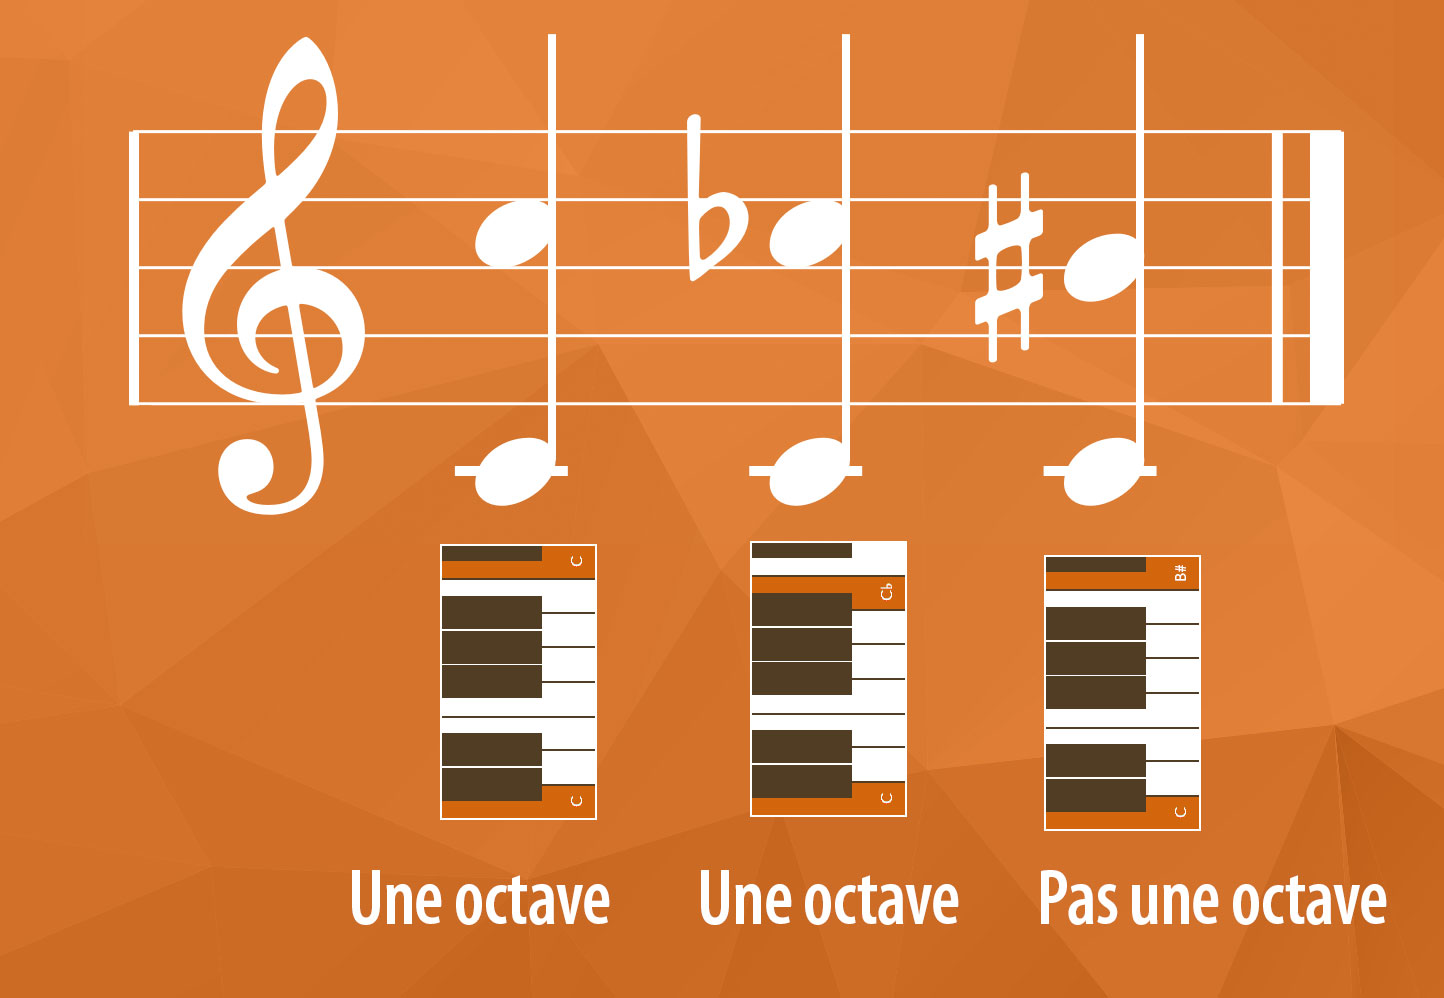 Exemples d'octaves